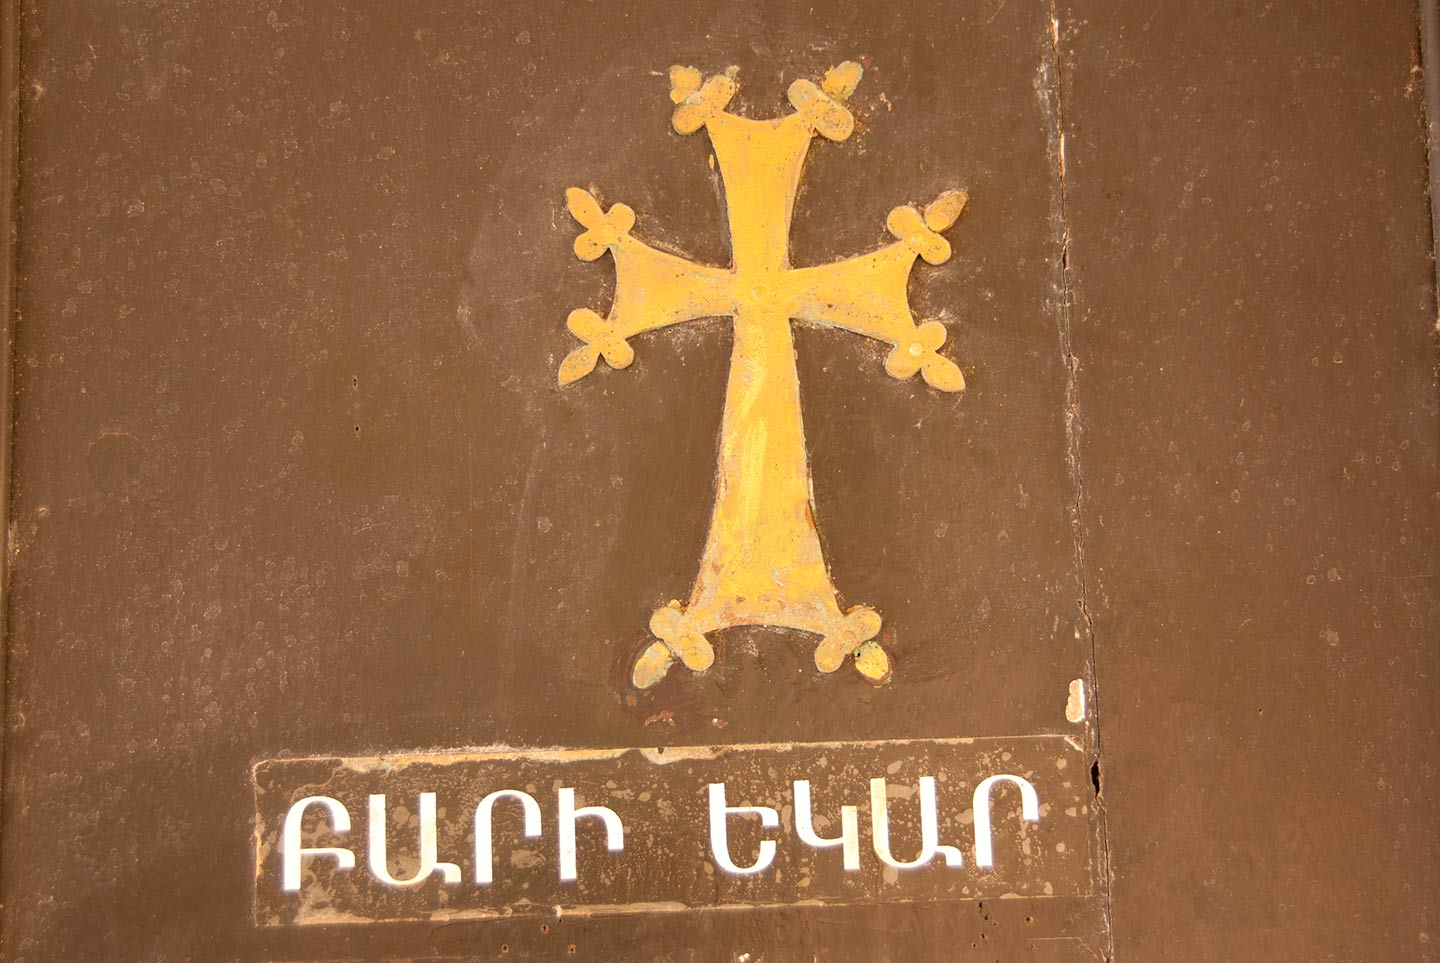 Image of the inscription on the door of Santa Croce degli Armeni church, Venice